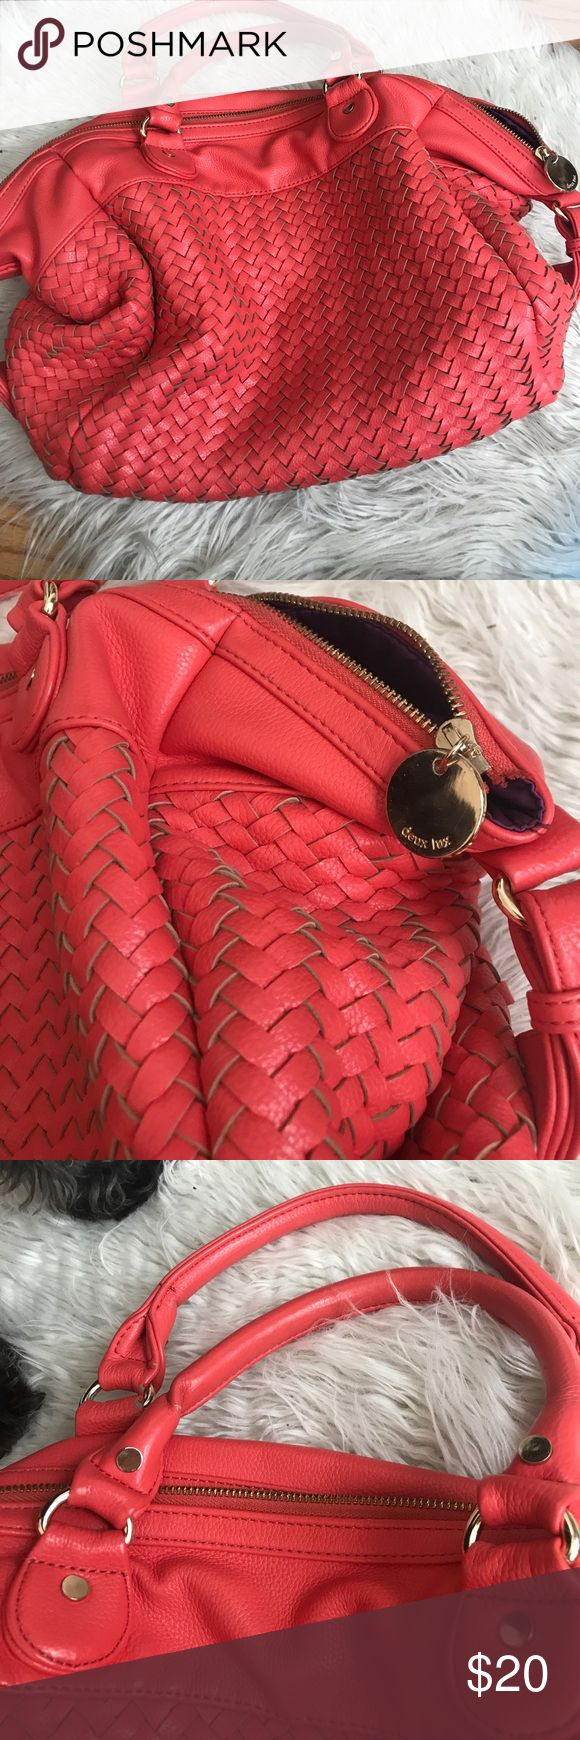 Coral/Orange Shoulder Bag Coral/Orange Basket weave Shoulder Bag. Bright purple interior. Used several times but in good condition. There are marks on the inside of the bag. One small peel on the bottom of the bag. Really great size and a beautiful orange Fall color. Deux Lux Bags